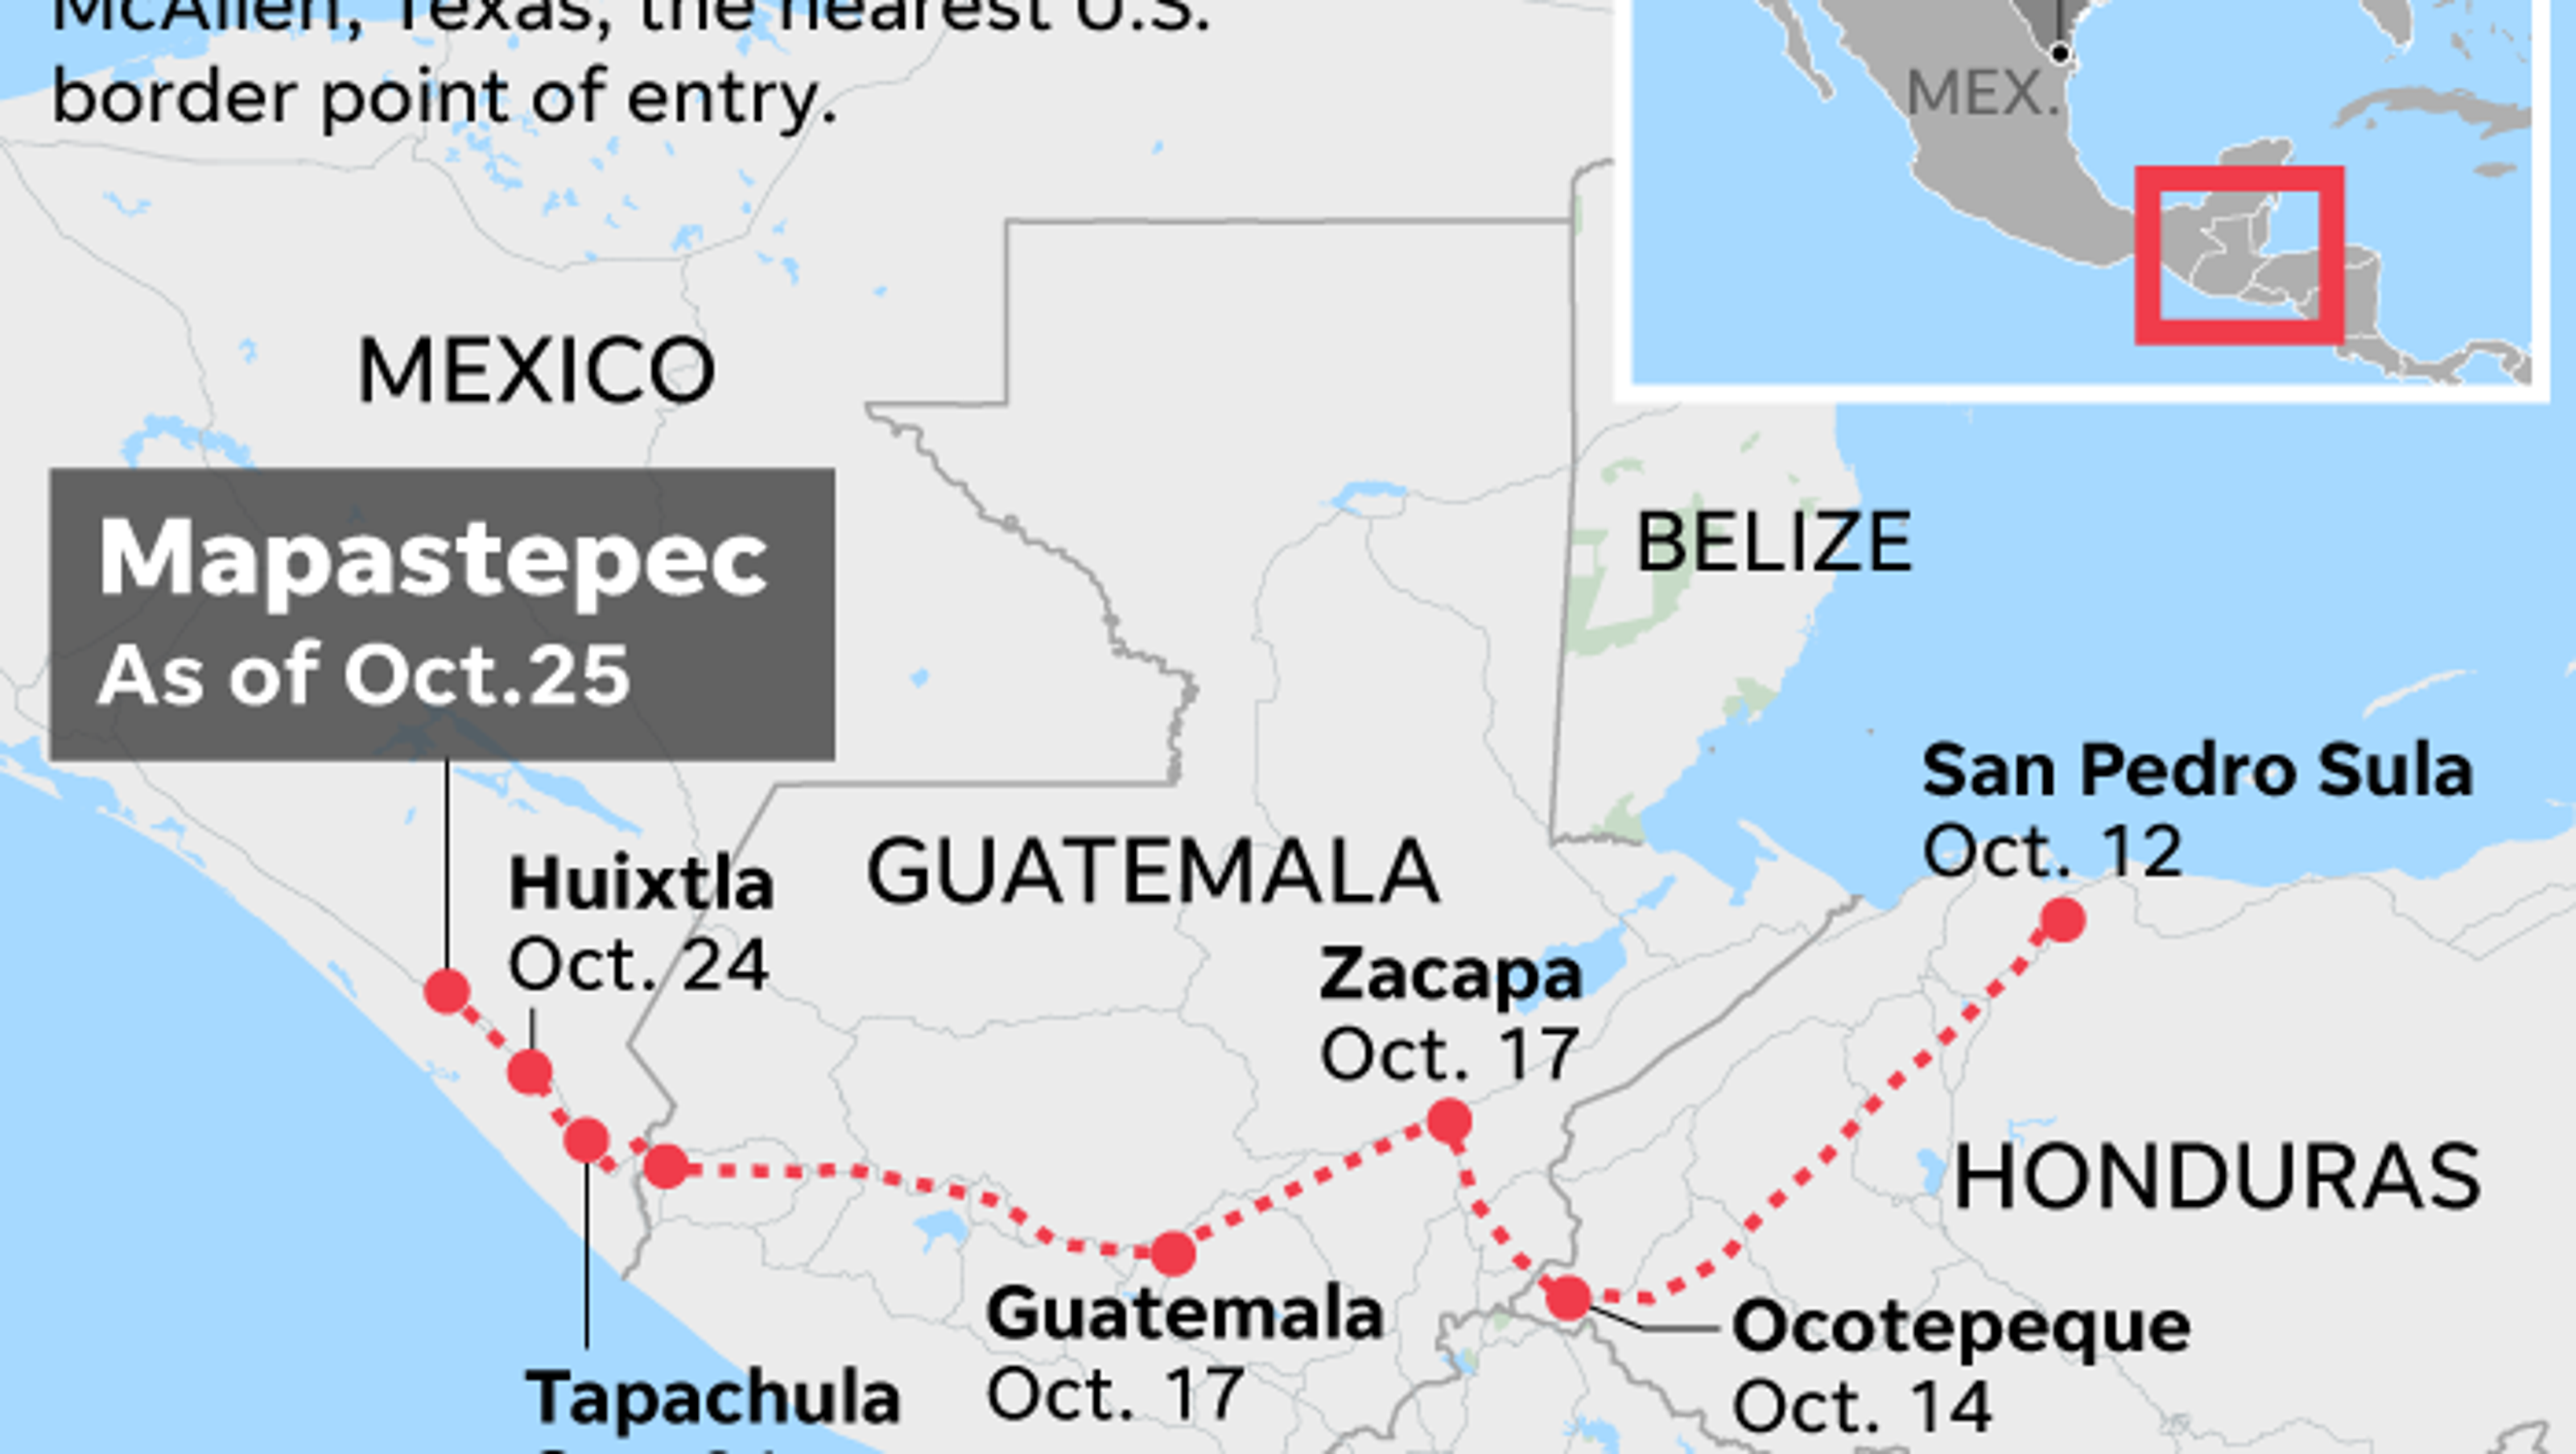 Mapastepec Mexico Map.Migrant Caravan Where Are They When Will They Get To The U S Border